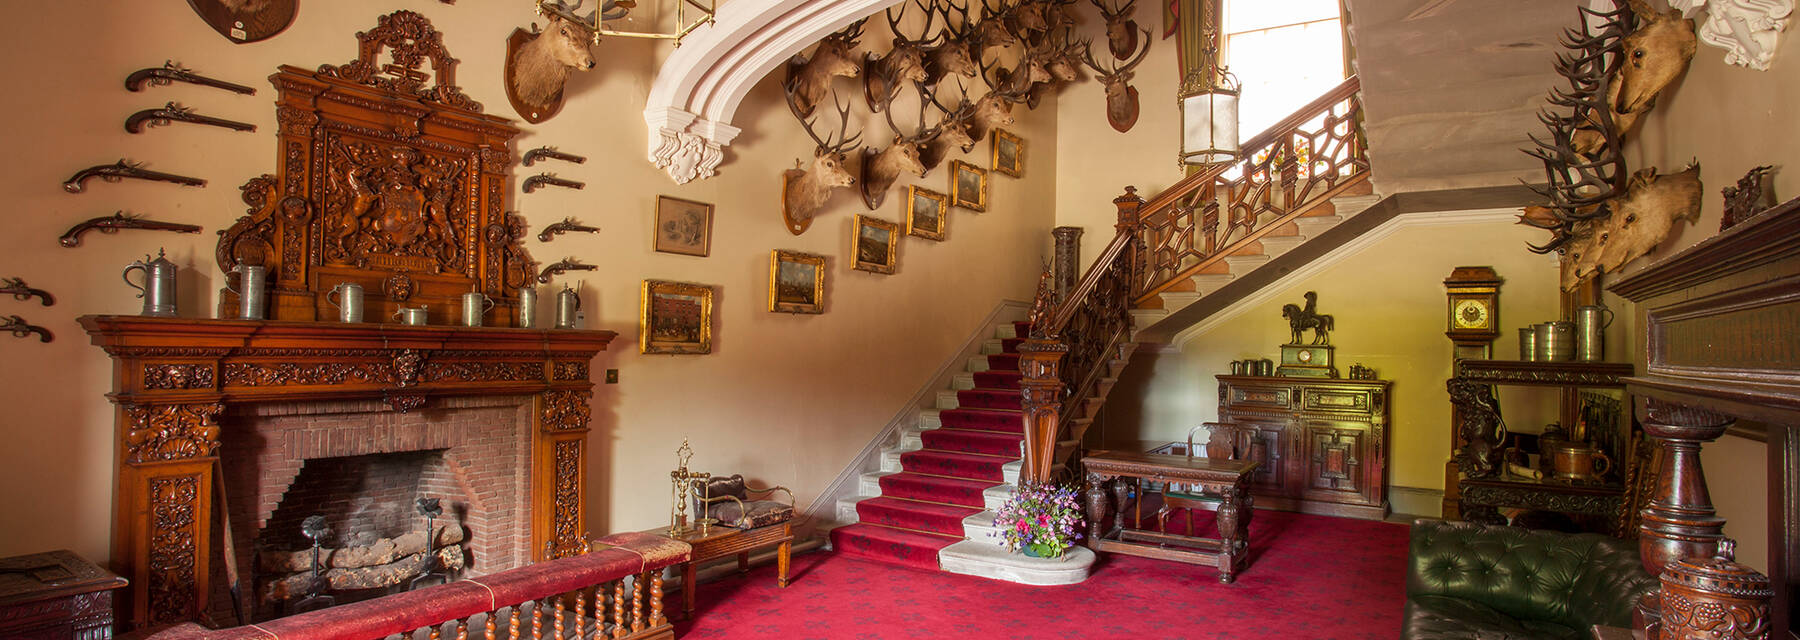 The main hall inside Brodick Castle